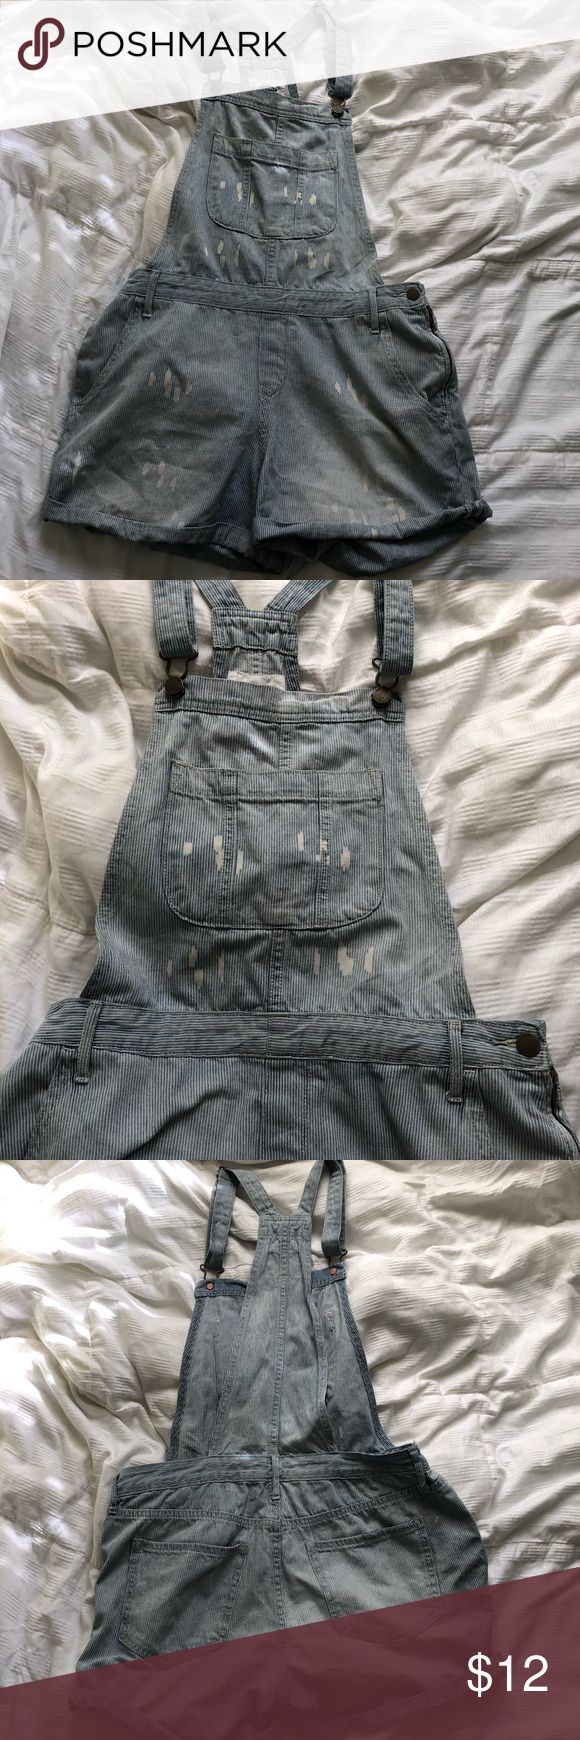 Old Navy Distressed Overall Shorts Distressed overall shorts (striped) Old Navy Shorts Jean Shorts